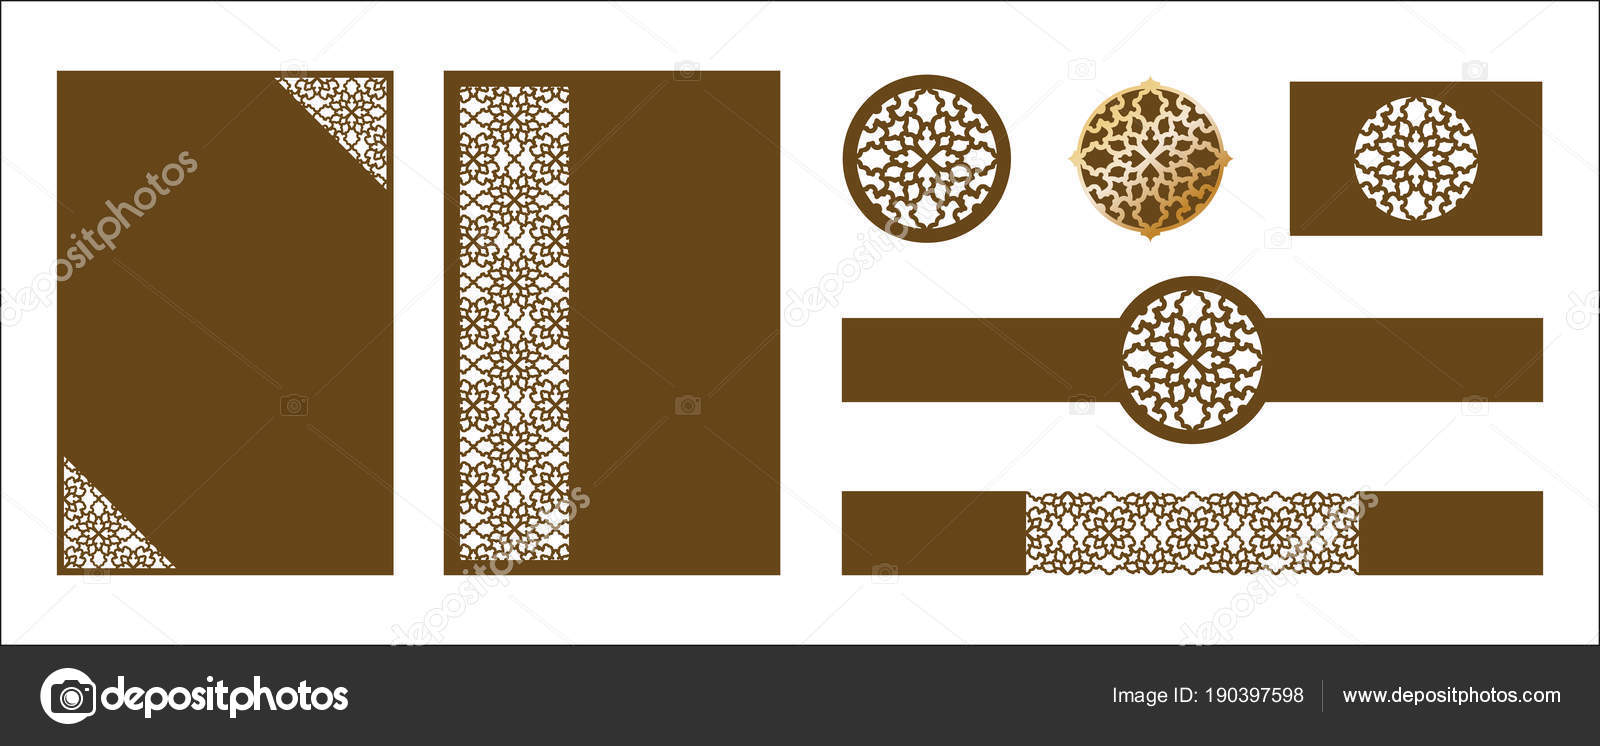 Laser cut ornamental vector template luxury greeting card wedd luxury greeting card wedding invitation card template belly band tags die cut paper card with openwork ornament cut out paper card for laser cutting or m4hsunfo